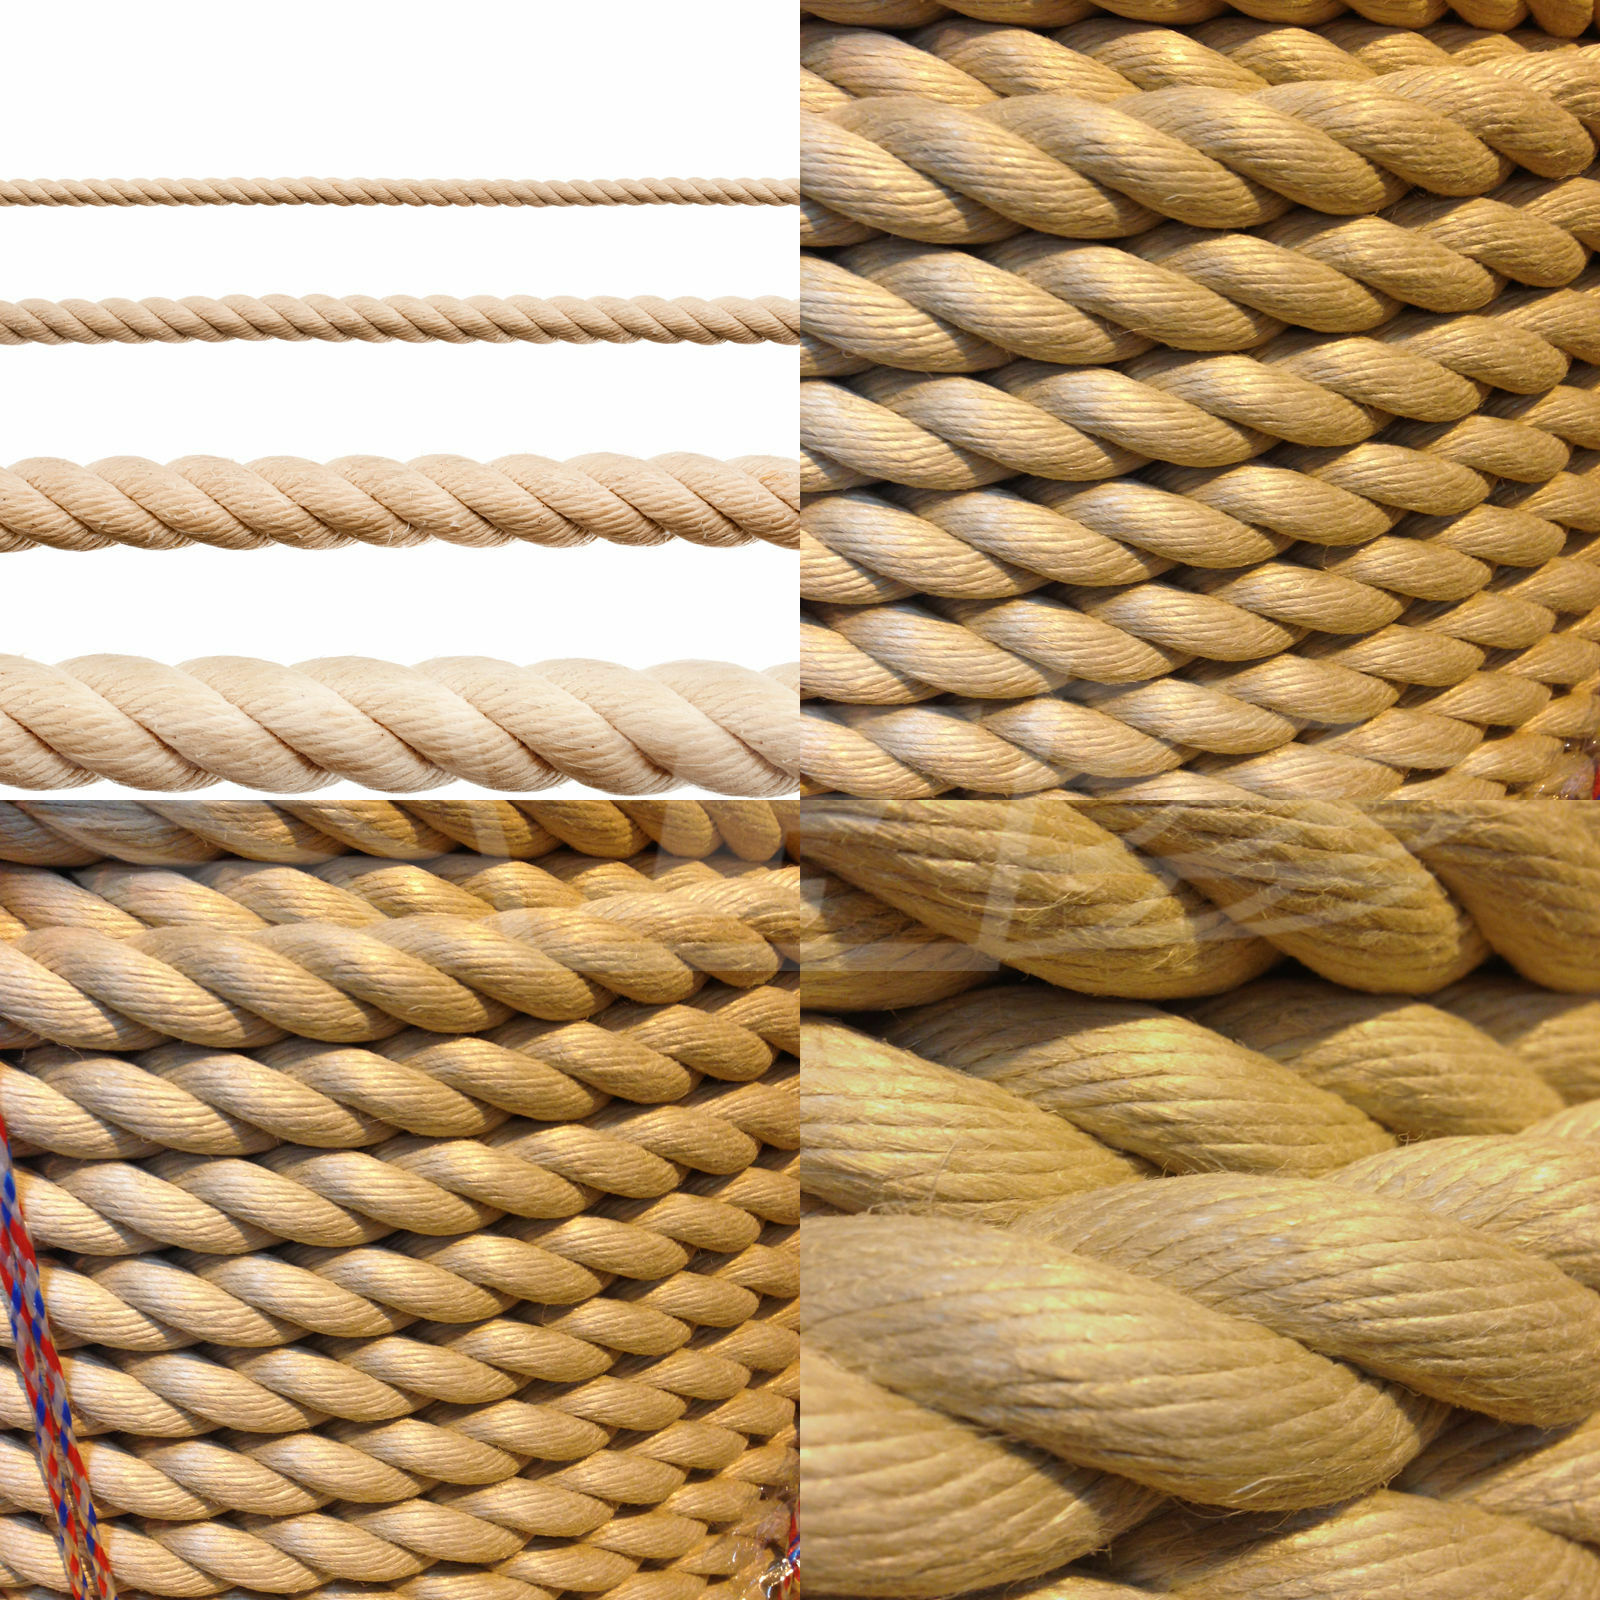 6mm GARDEN DECKING ROPE, POLYHEMP, POLY HEMP, HEMPEX, SYNTHETIC BOATING MARINE